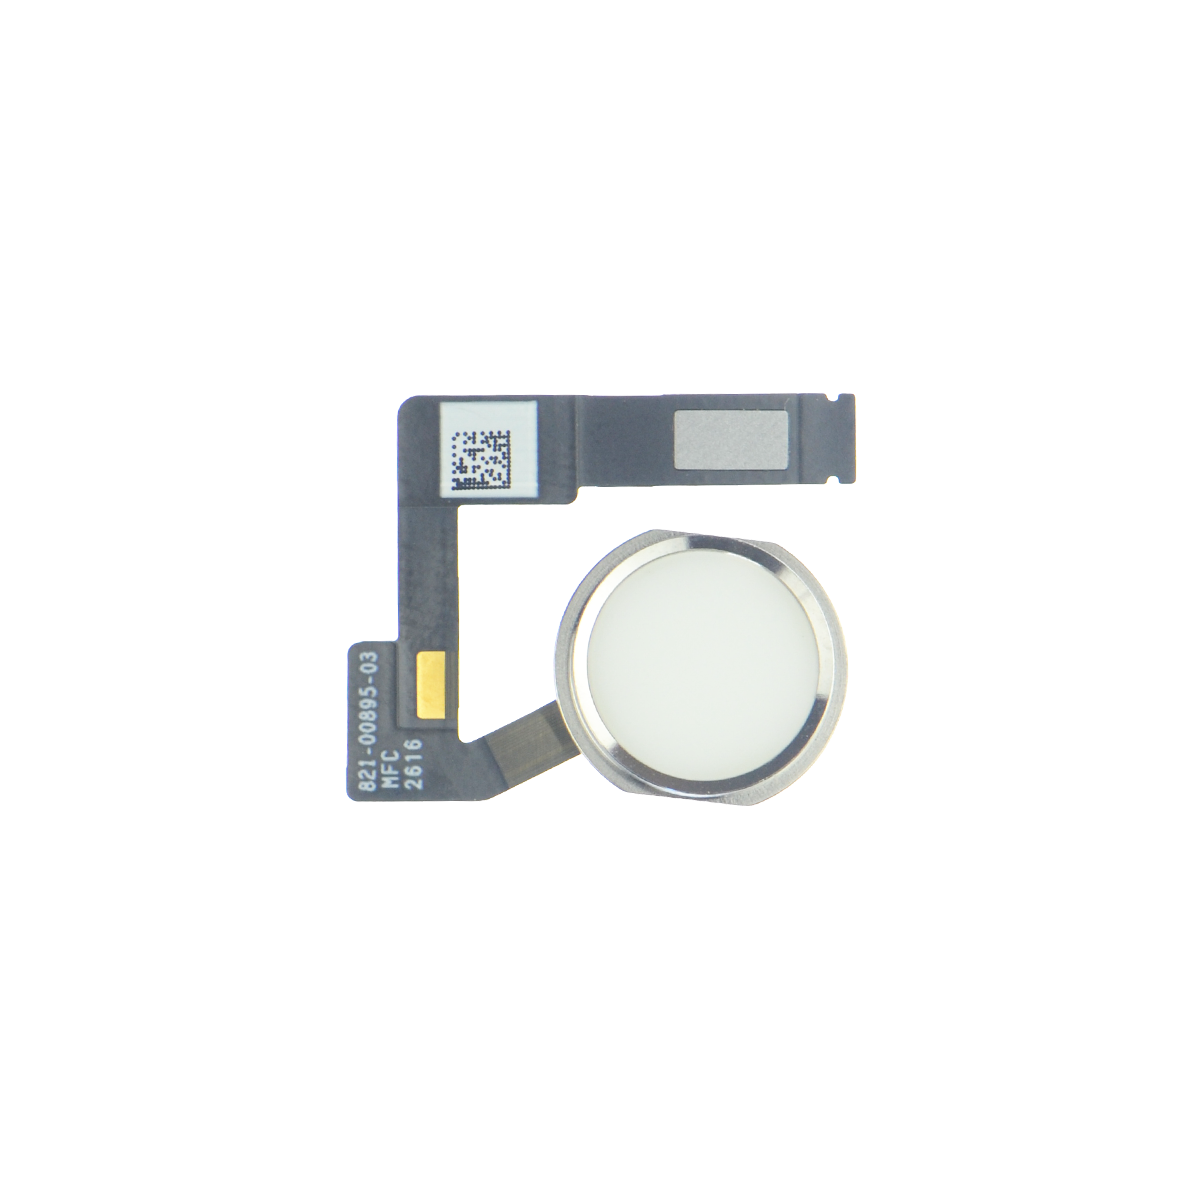 ipad-pro-10-5-home-button-touch-id-assembly-white-silver_S4VPEHBAK8CN.png